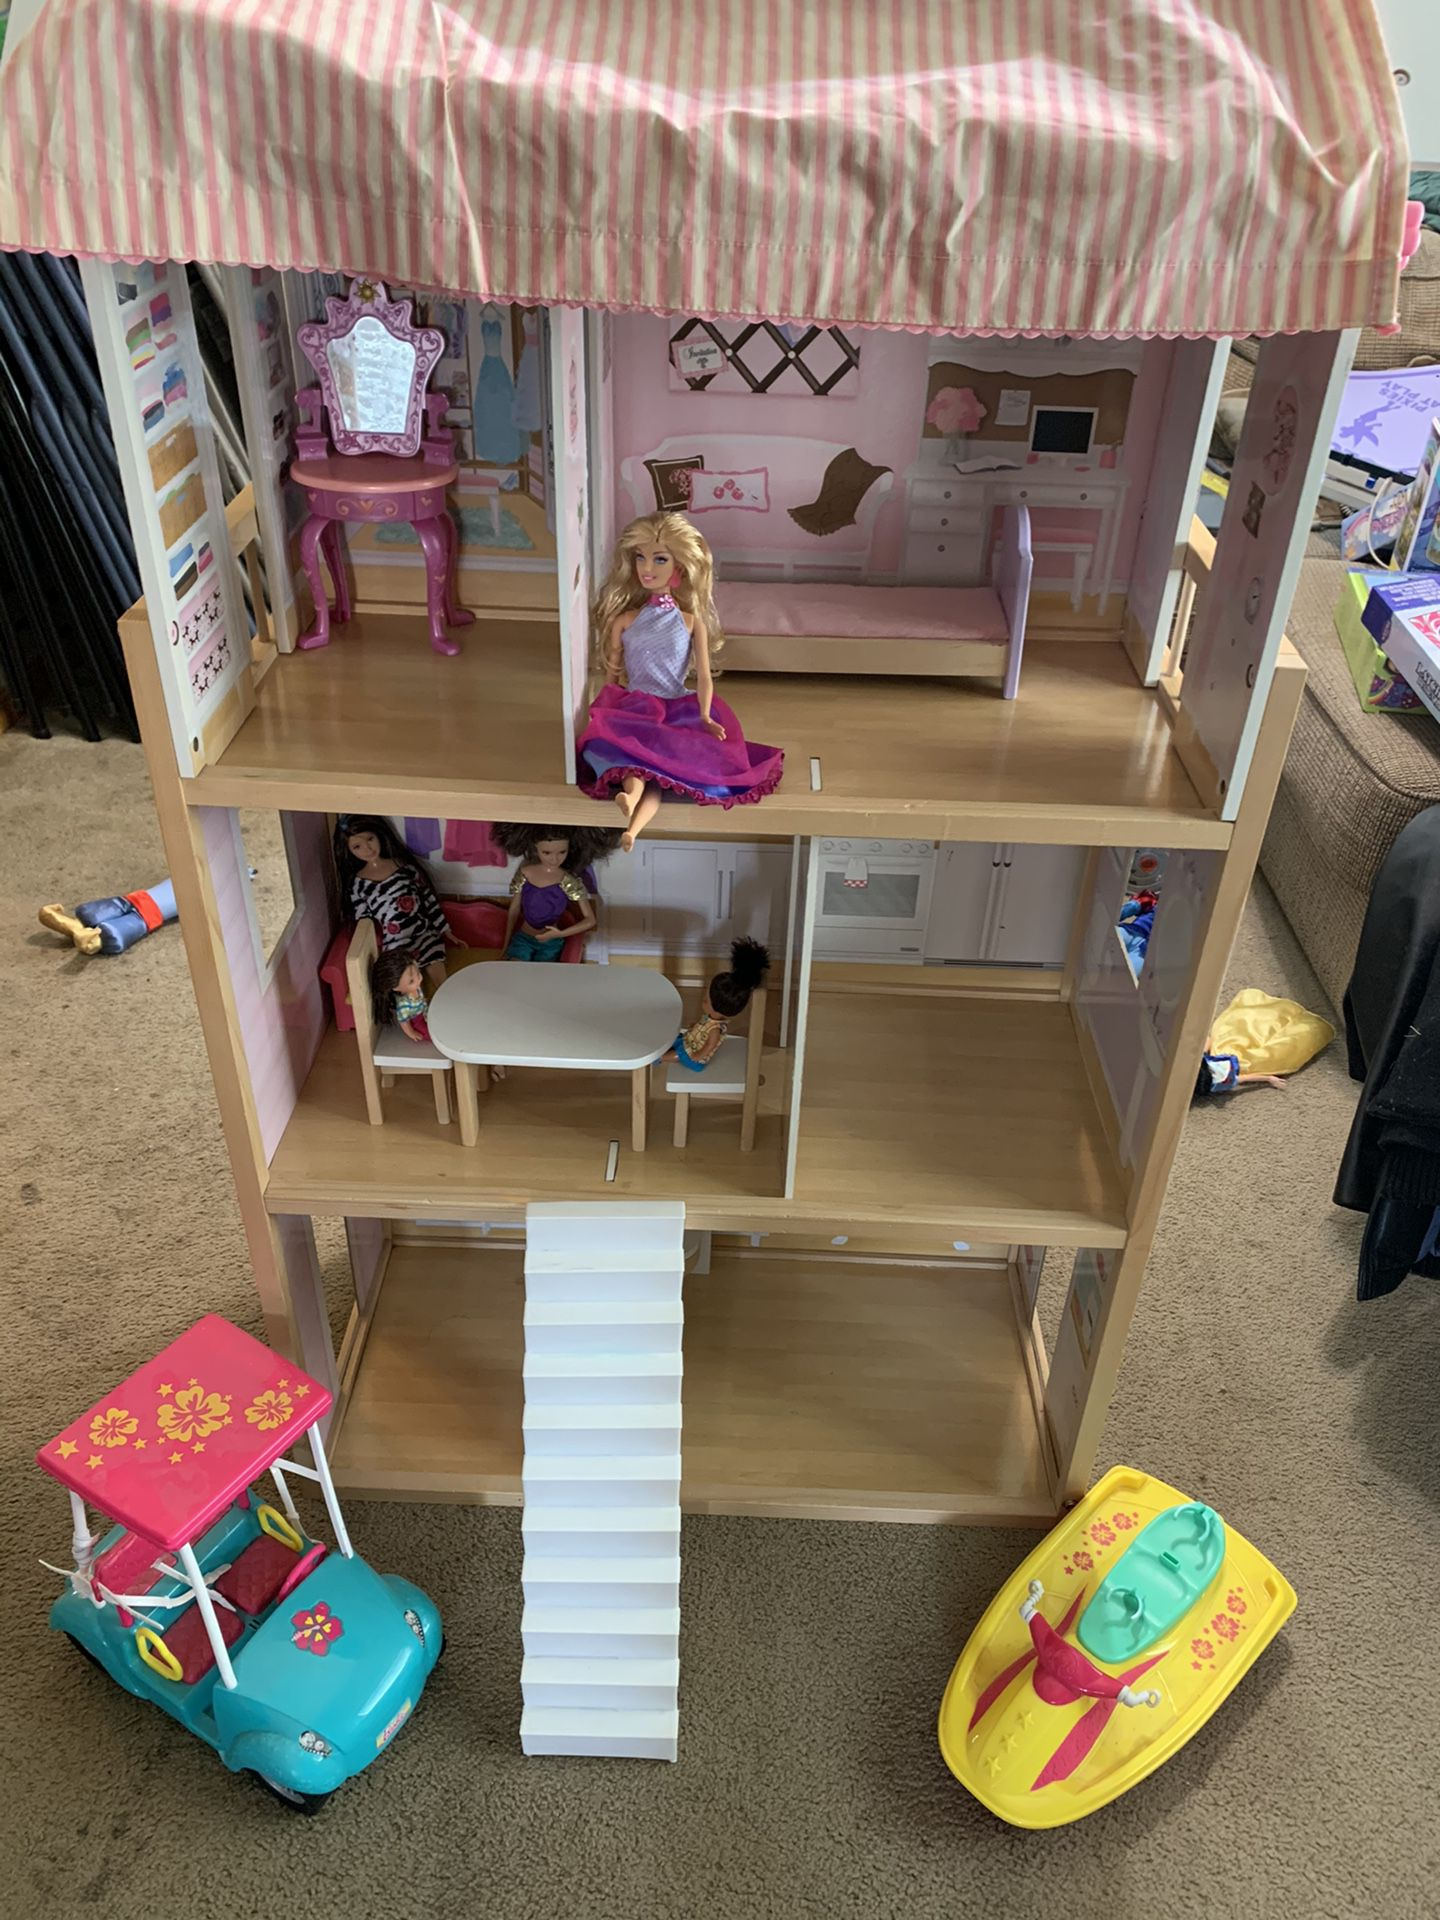 Doll House with a lot of dolls